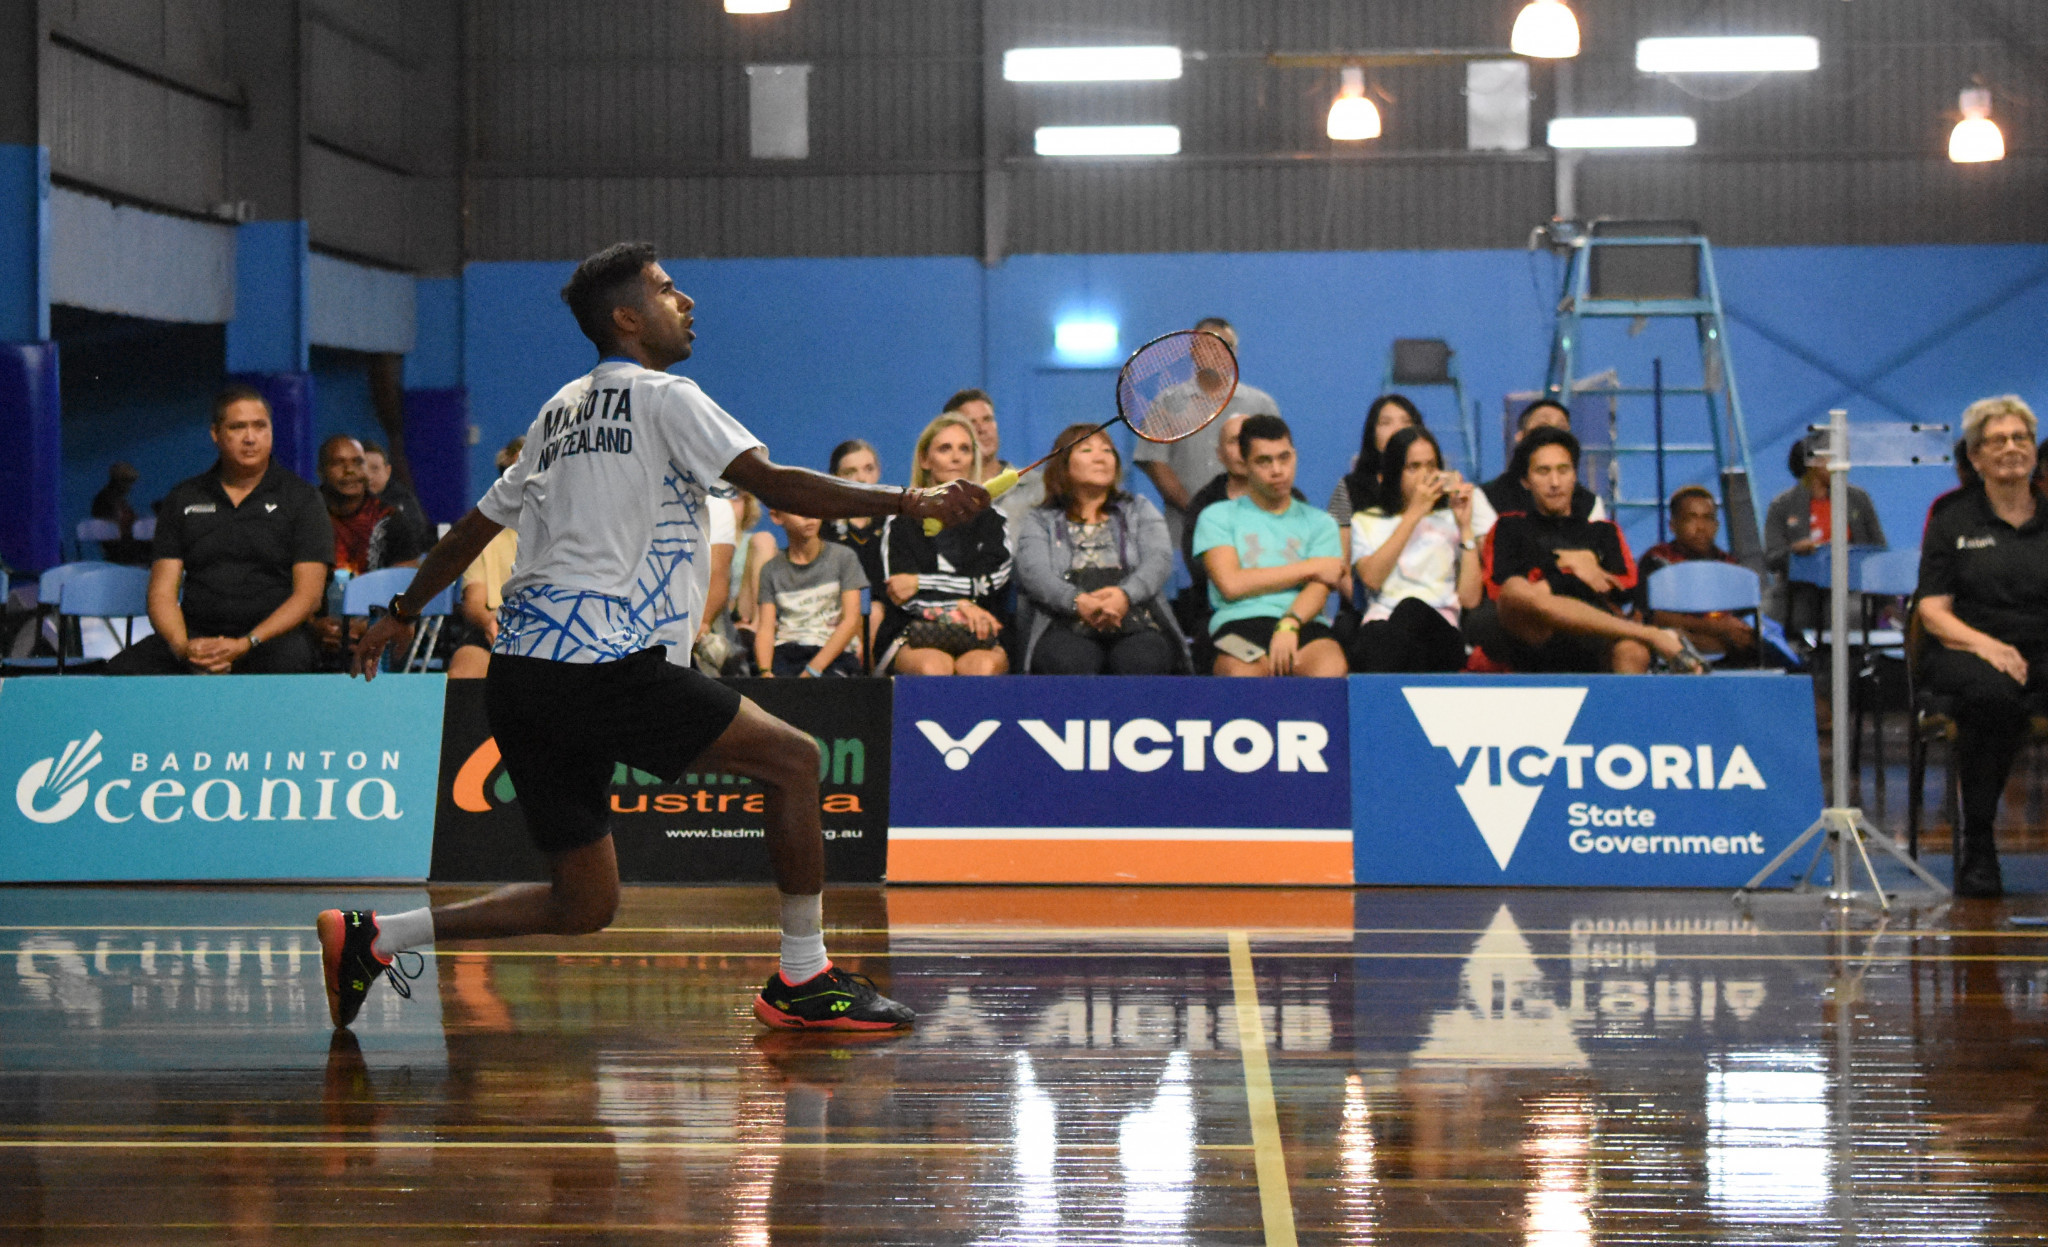 New Zealand's top seed Abhinav Manota regained the men's singles title and added doubles gold ©Ballarat Badminton